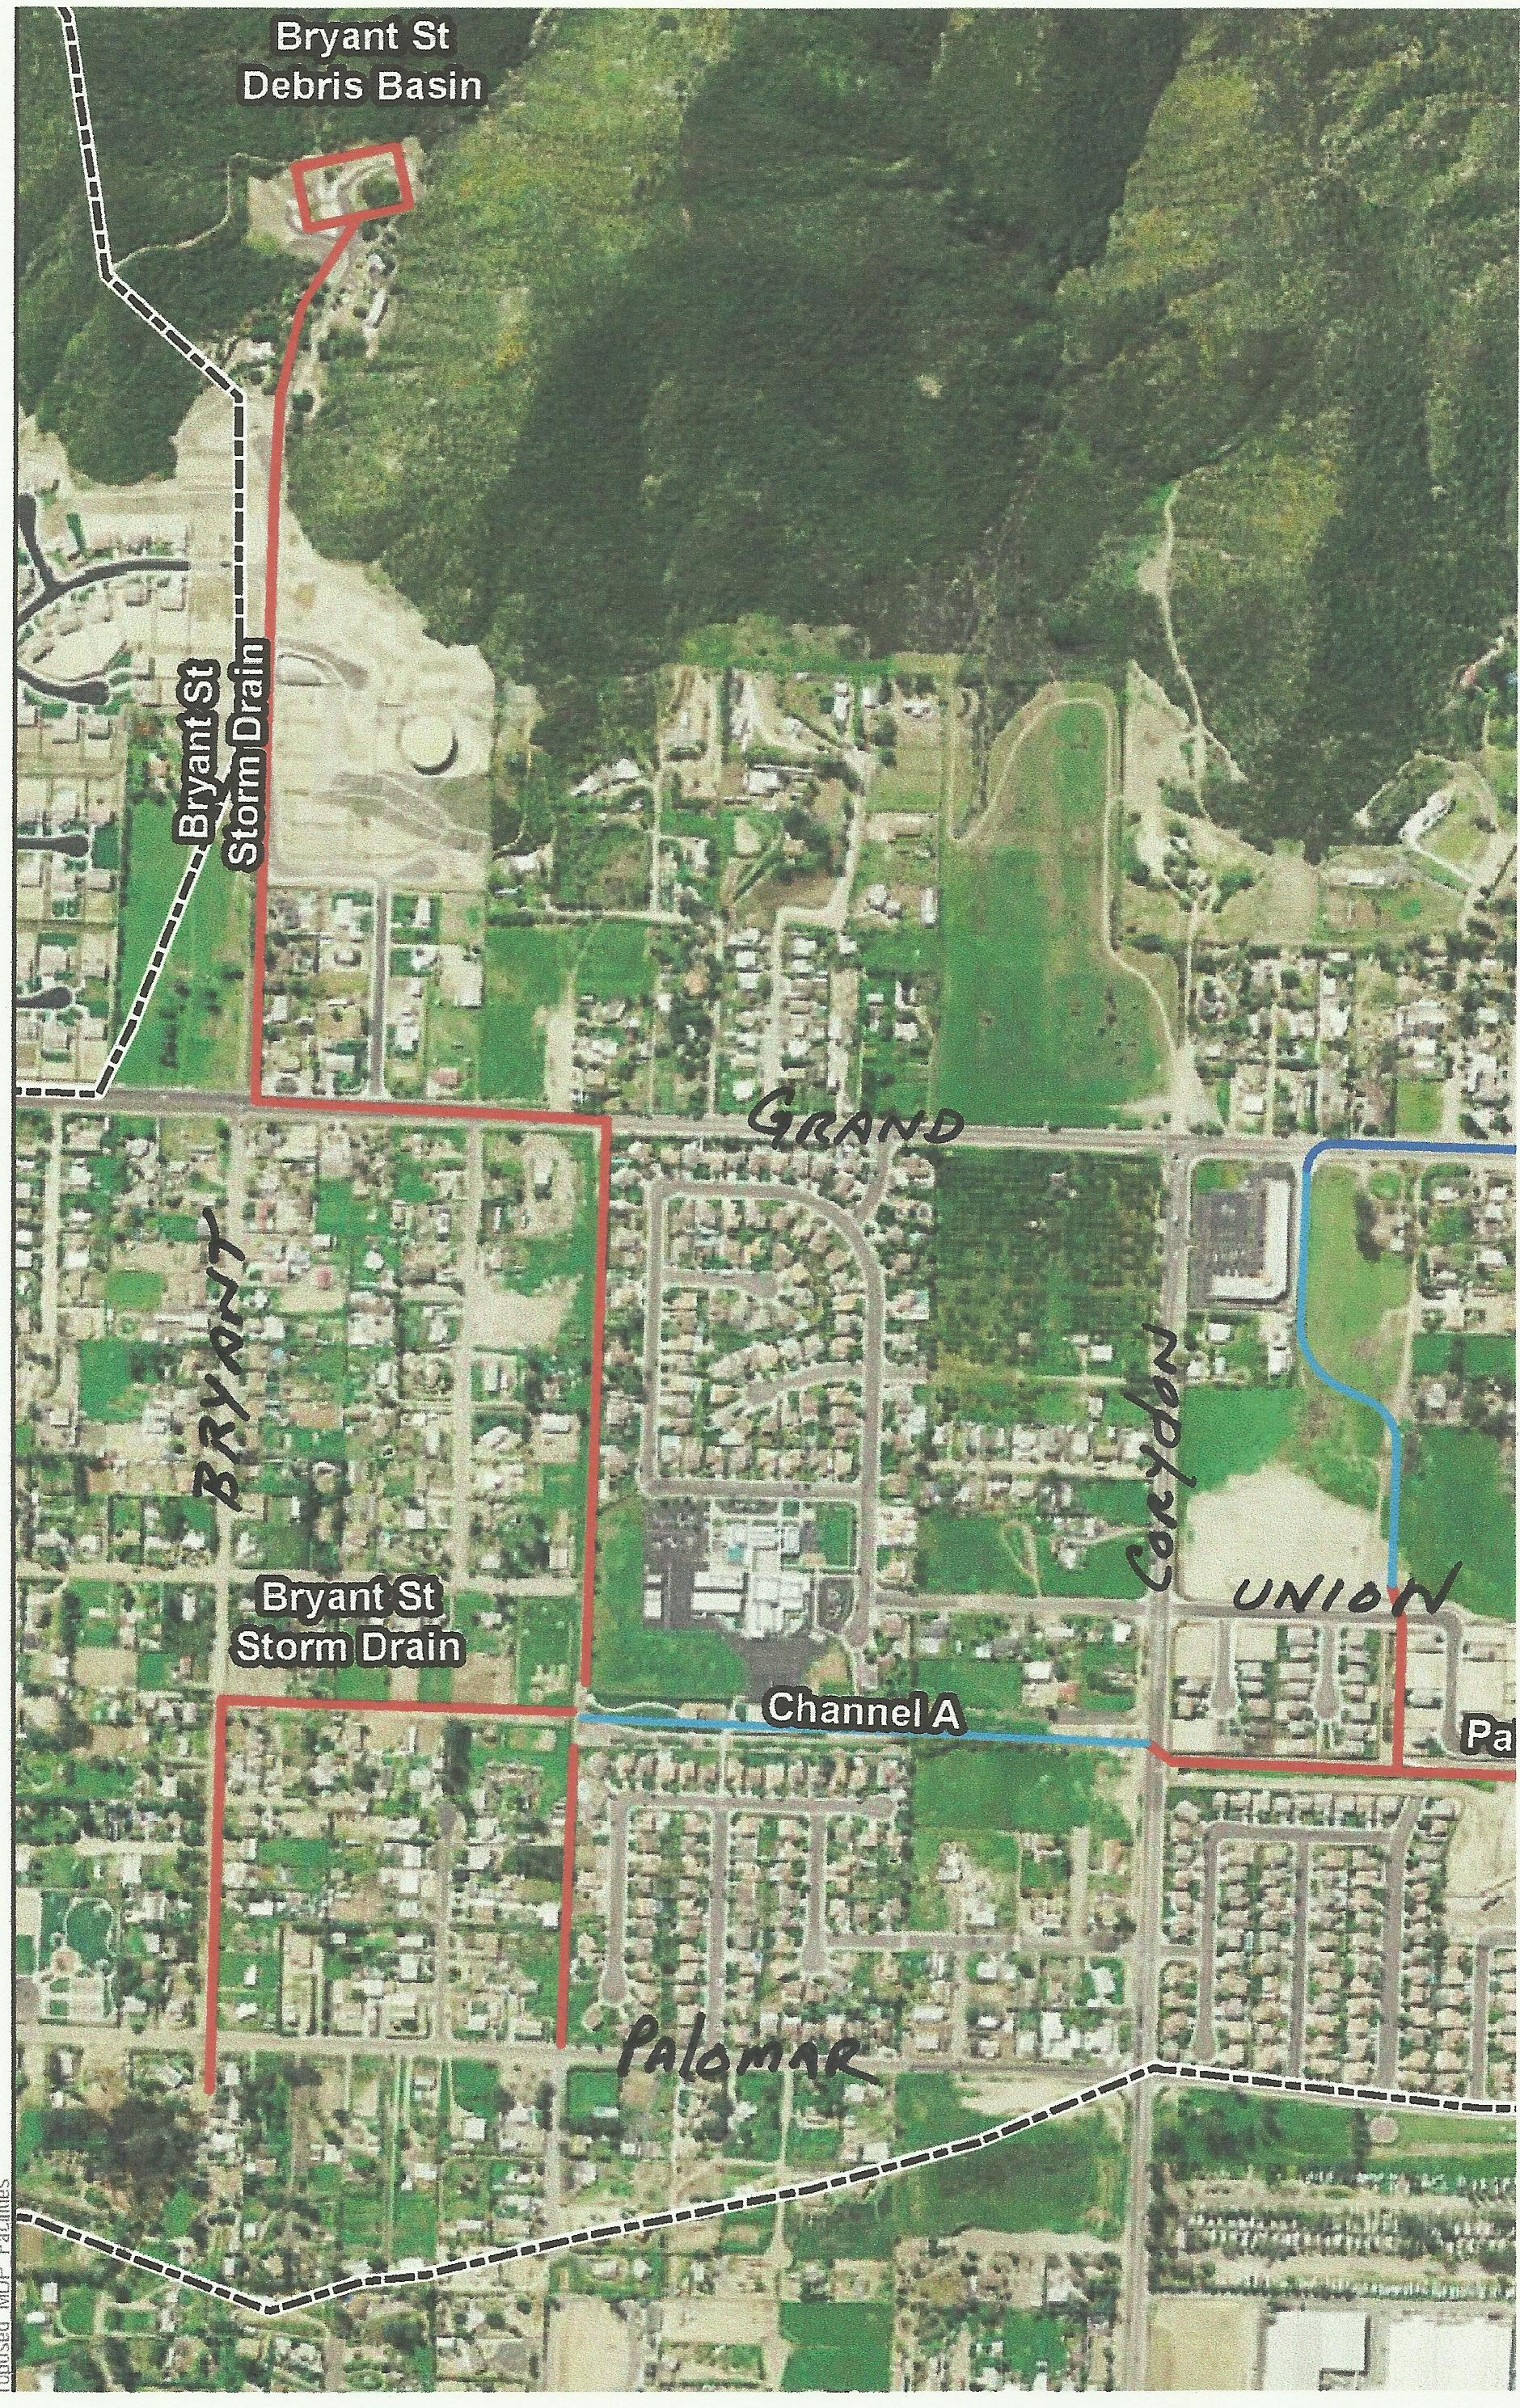 Lakeland Village Master Drainage Plan adopted in 2014